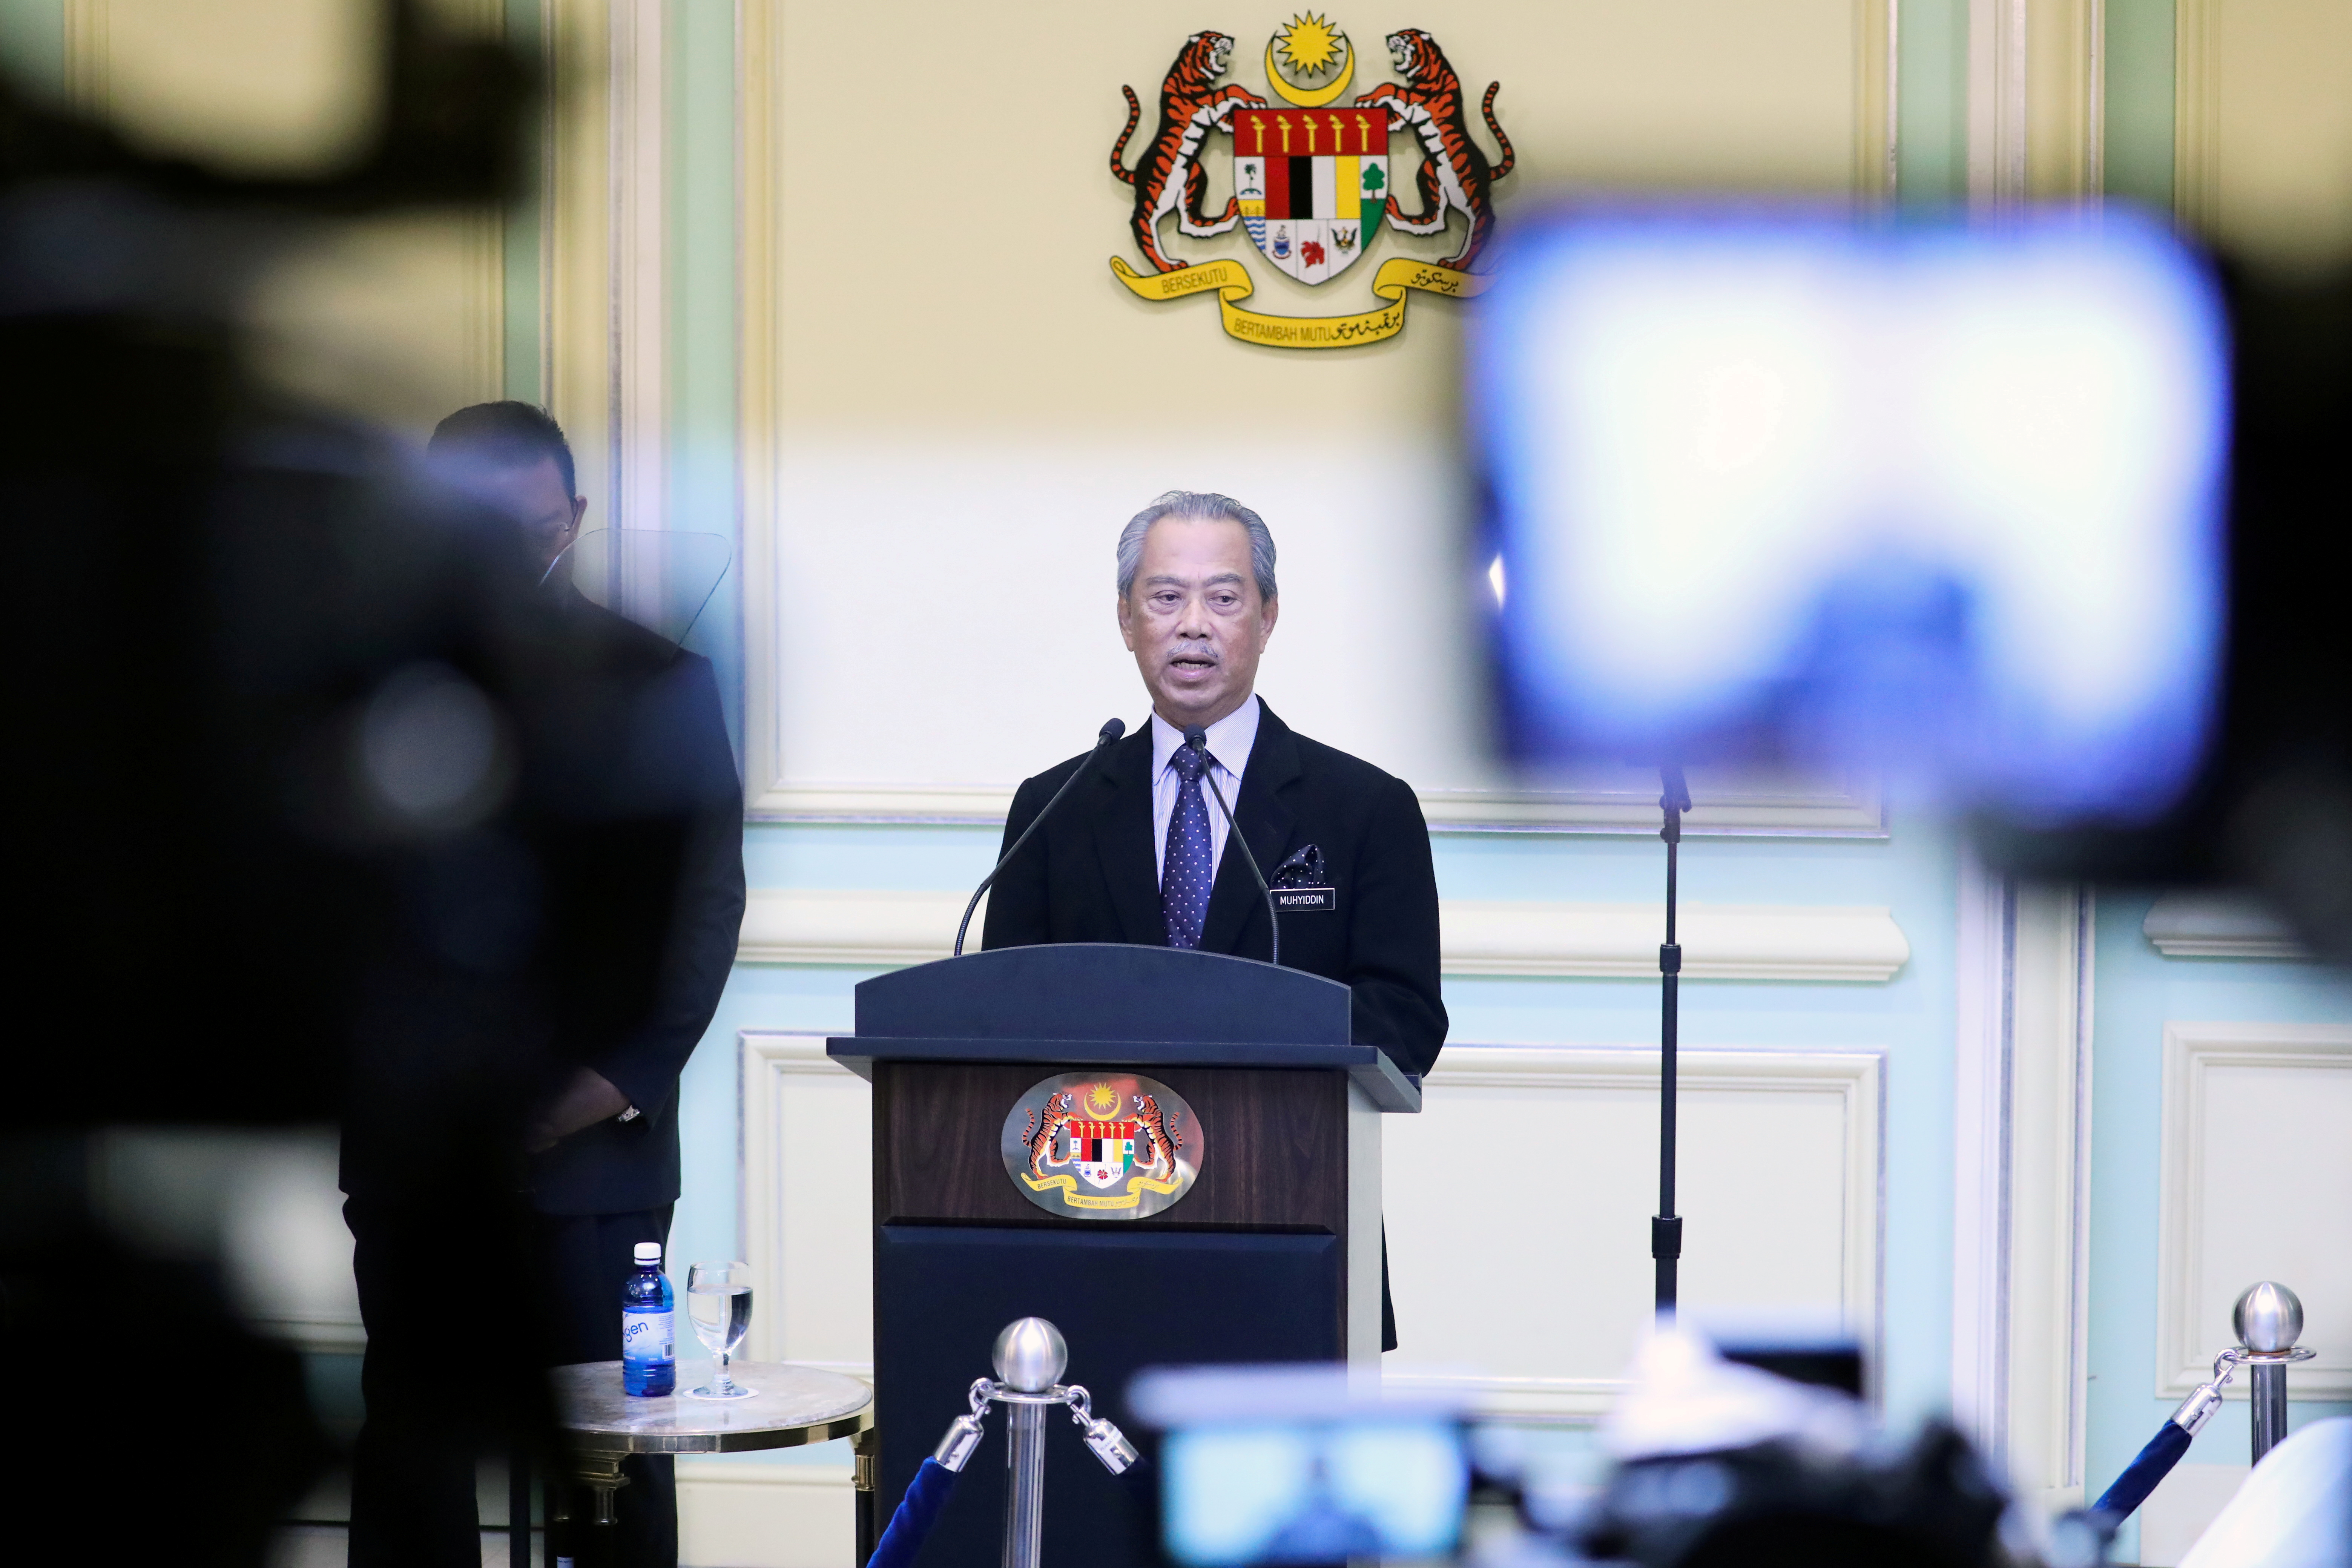 Malaysia's Prime Minister Muhyiddin Yassin speaking during his cabinet announcement in Putrajaya, Malaysia March 9, 2020. REUTERS/Lim Huey Teng/File Photo